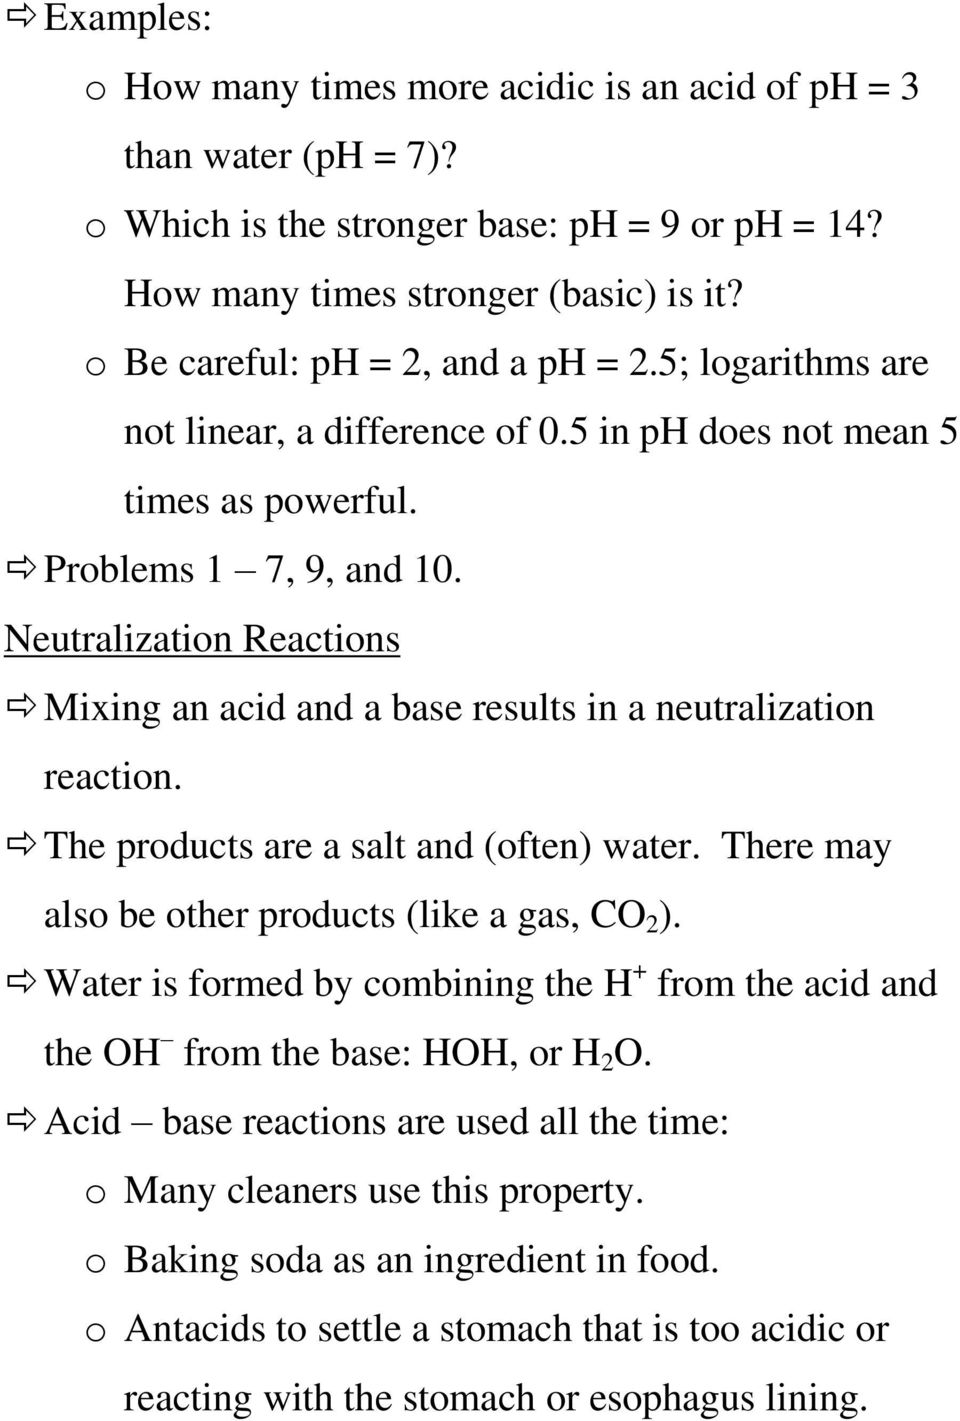 Neutralization Reactions Mixing an acid and a base results in a neutralization reaction. The products are a salt and (often) water. There may also be other products (like a gas, CO 2 ).